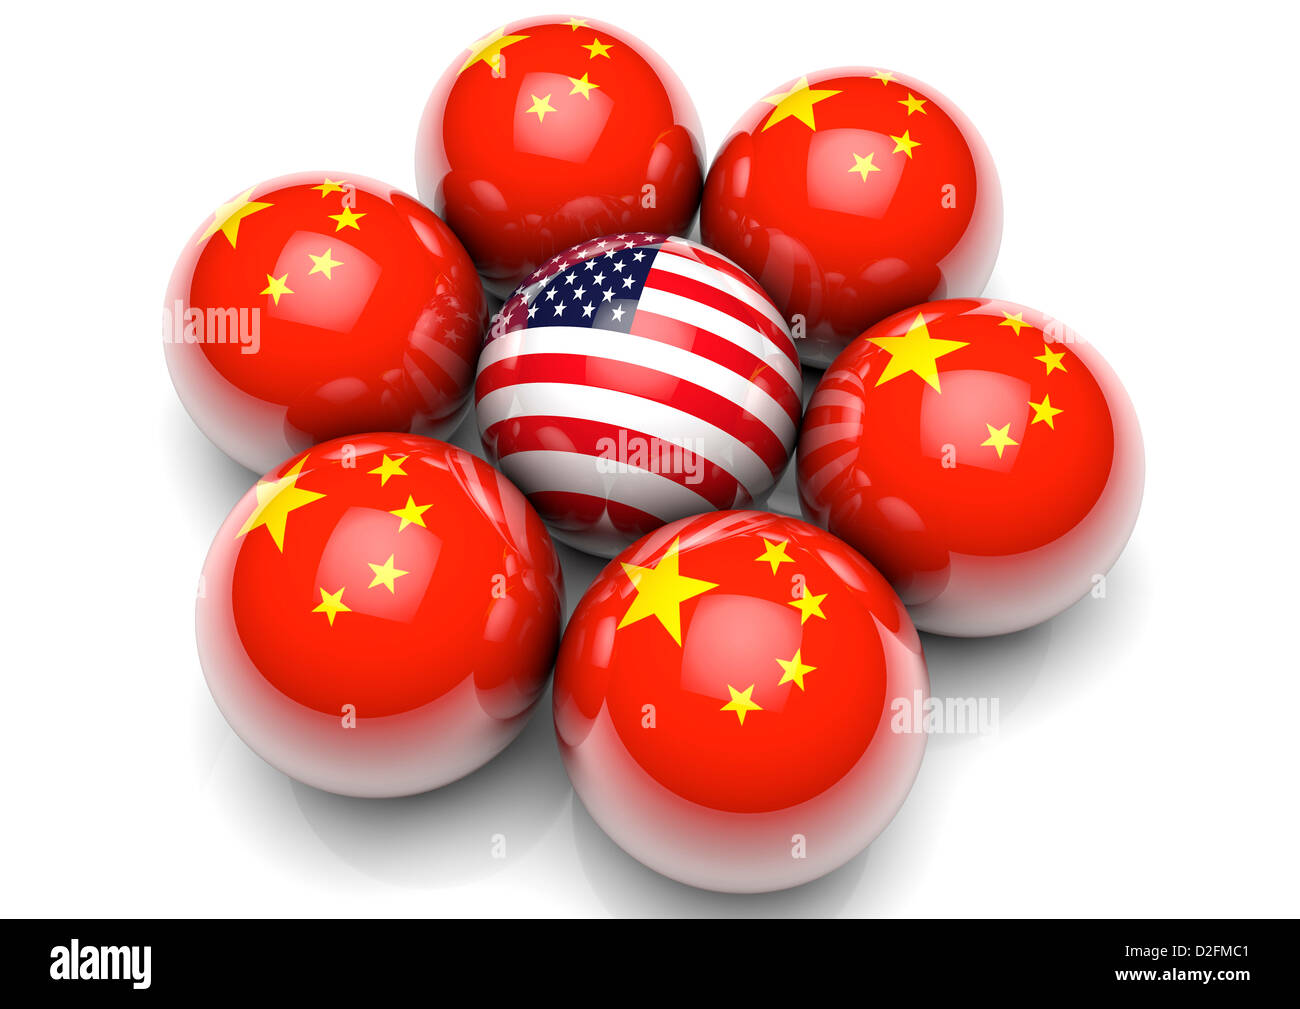 International relations concept - USA Stars and Stripes Flag surrounded by spheres with the flag of China - Stock Image